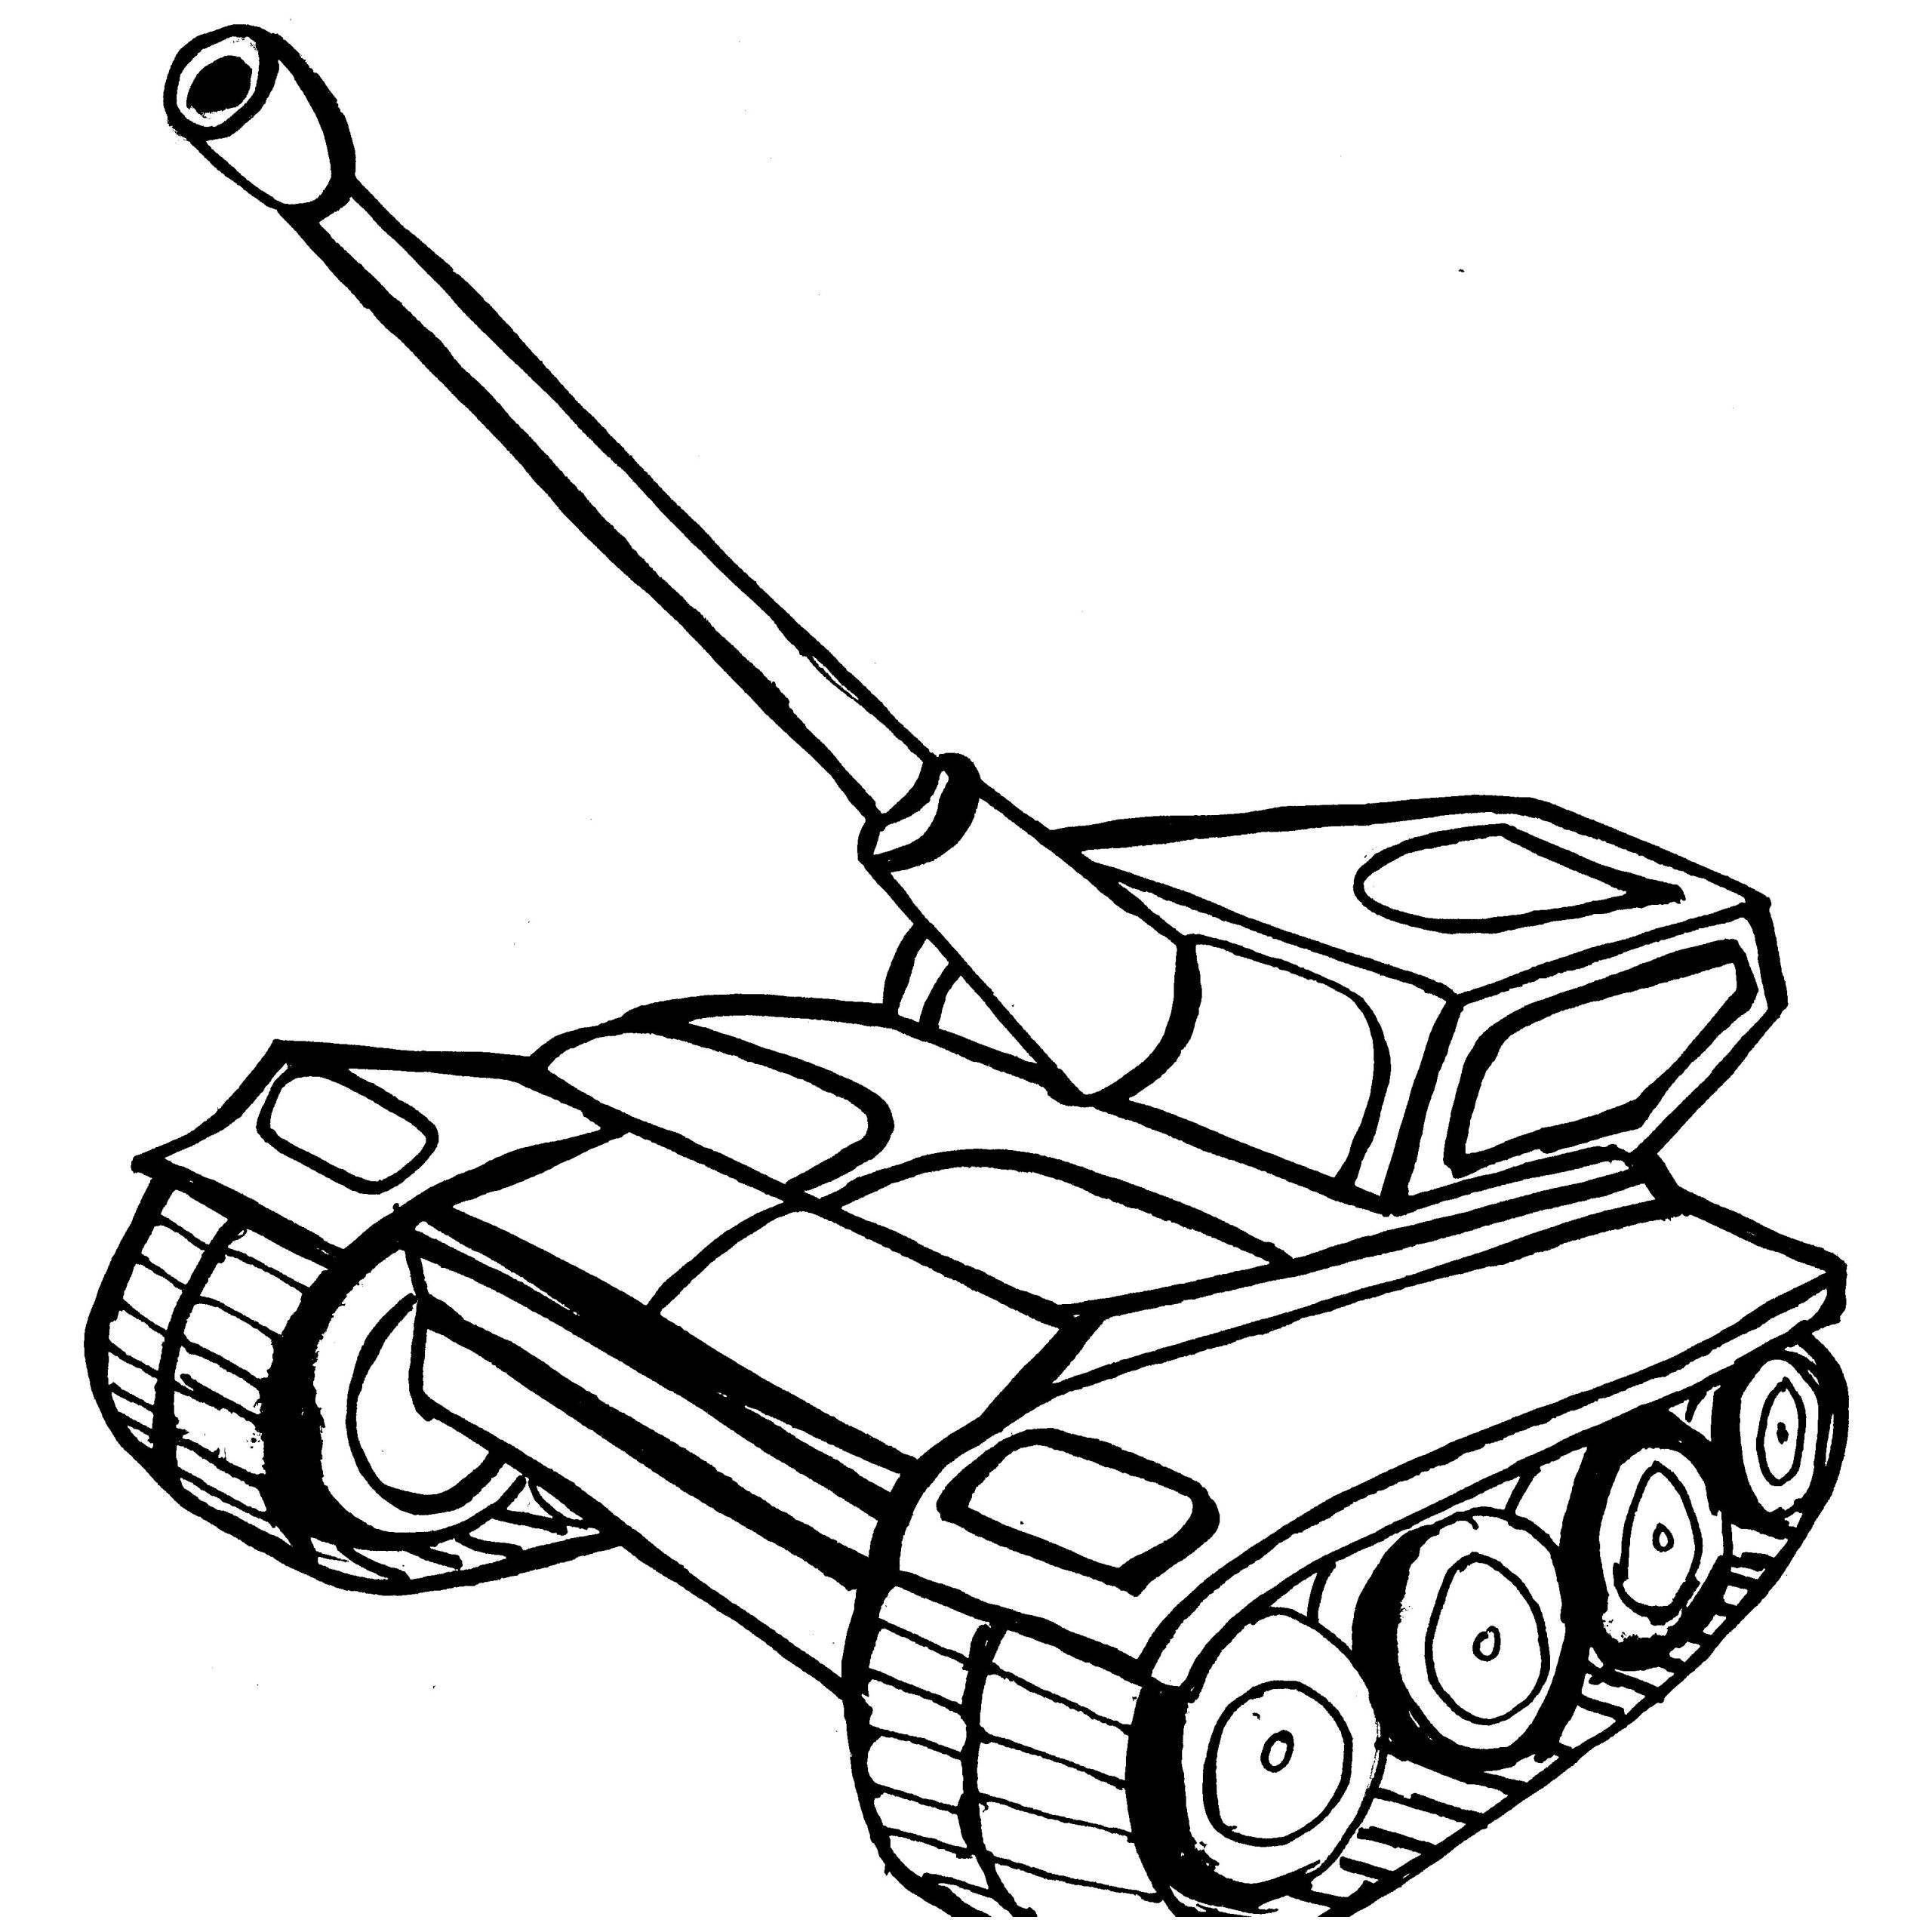 military tank drawing at getdrawings com free for personal use rh getdrawings com army tank clipart